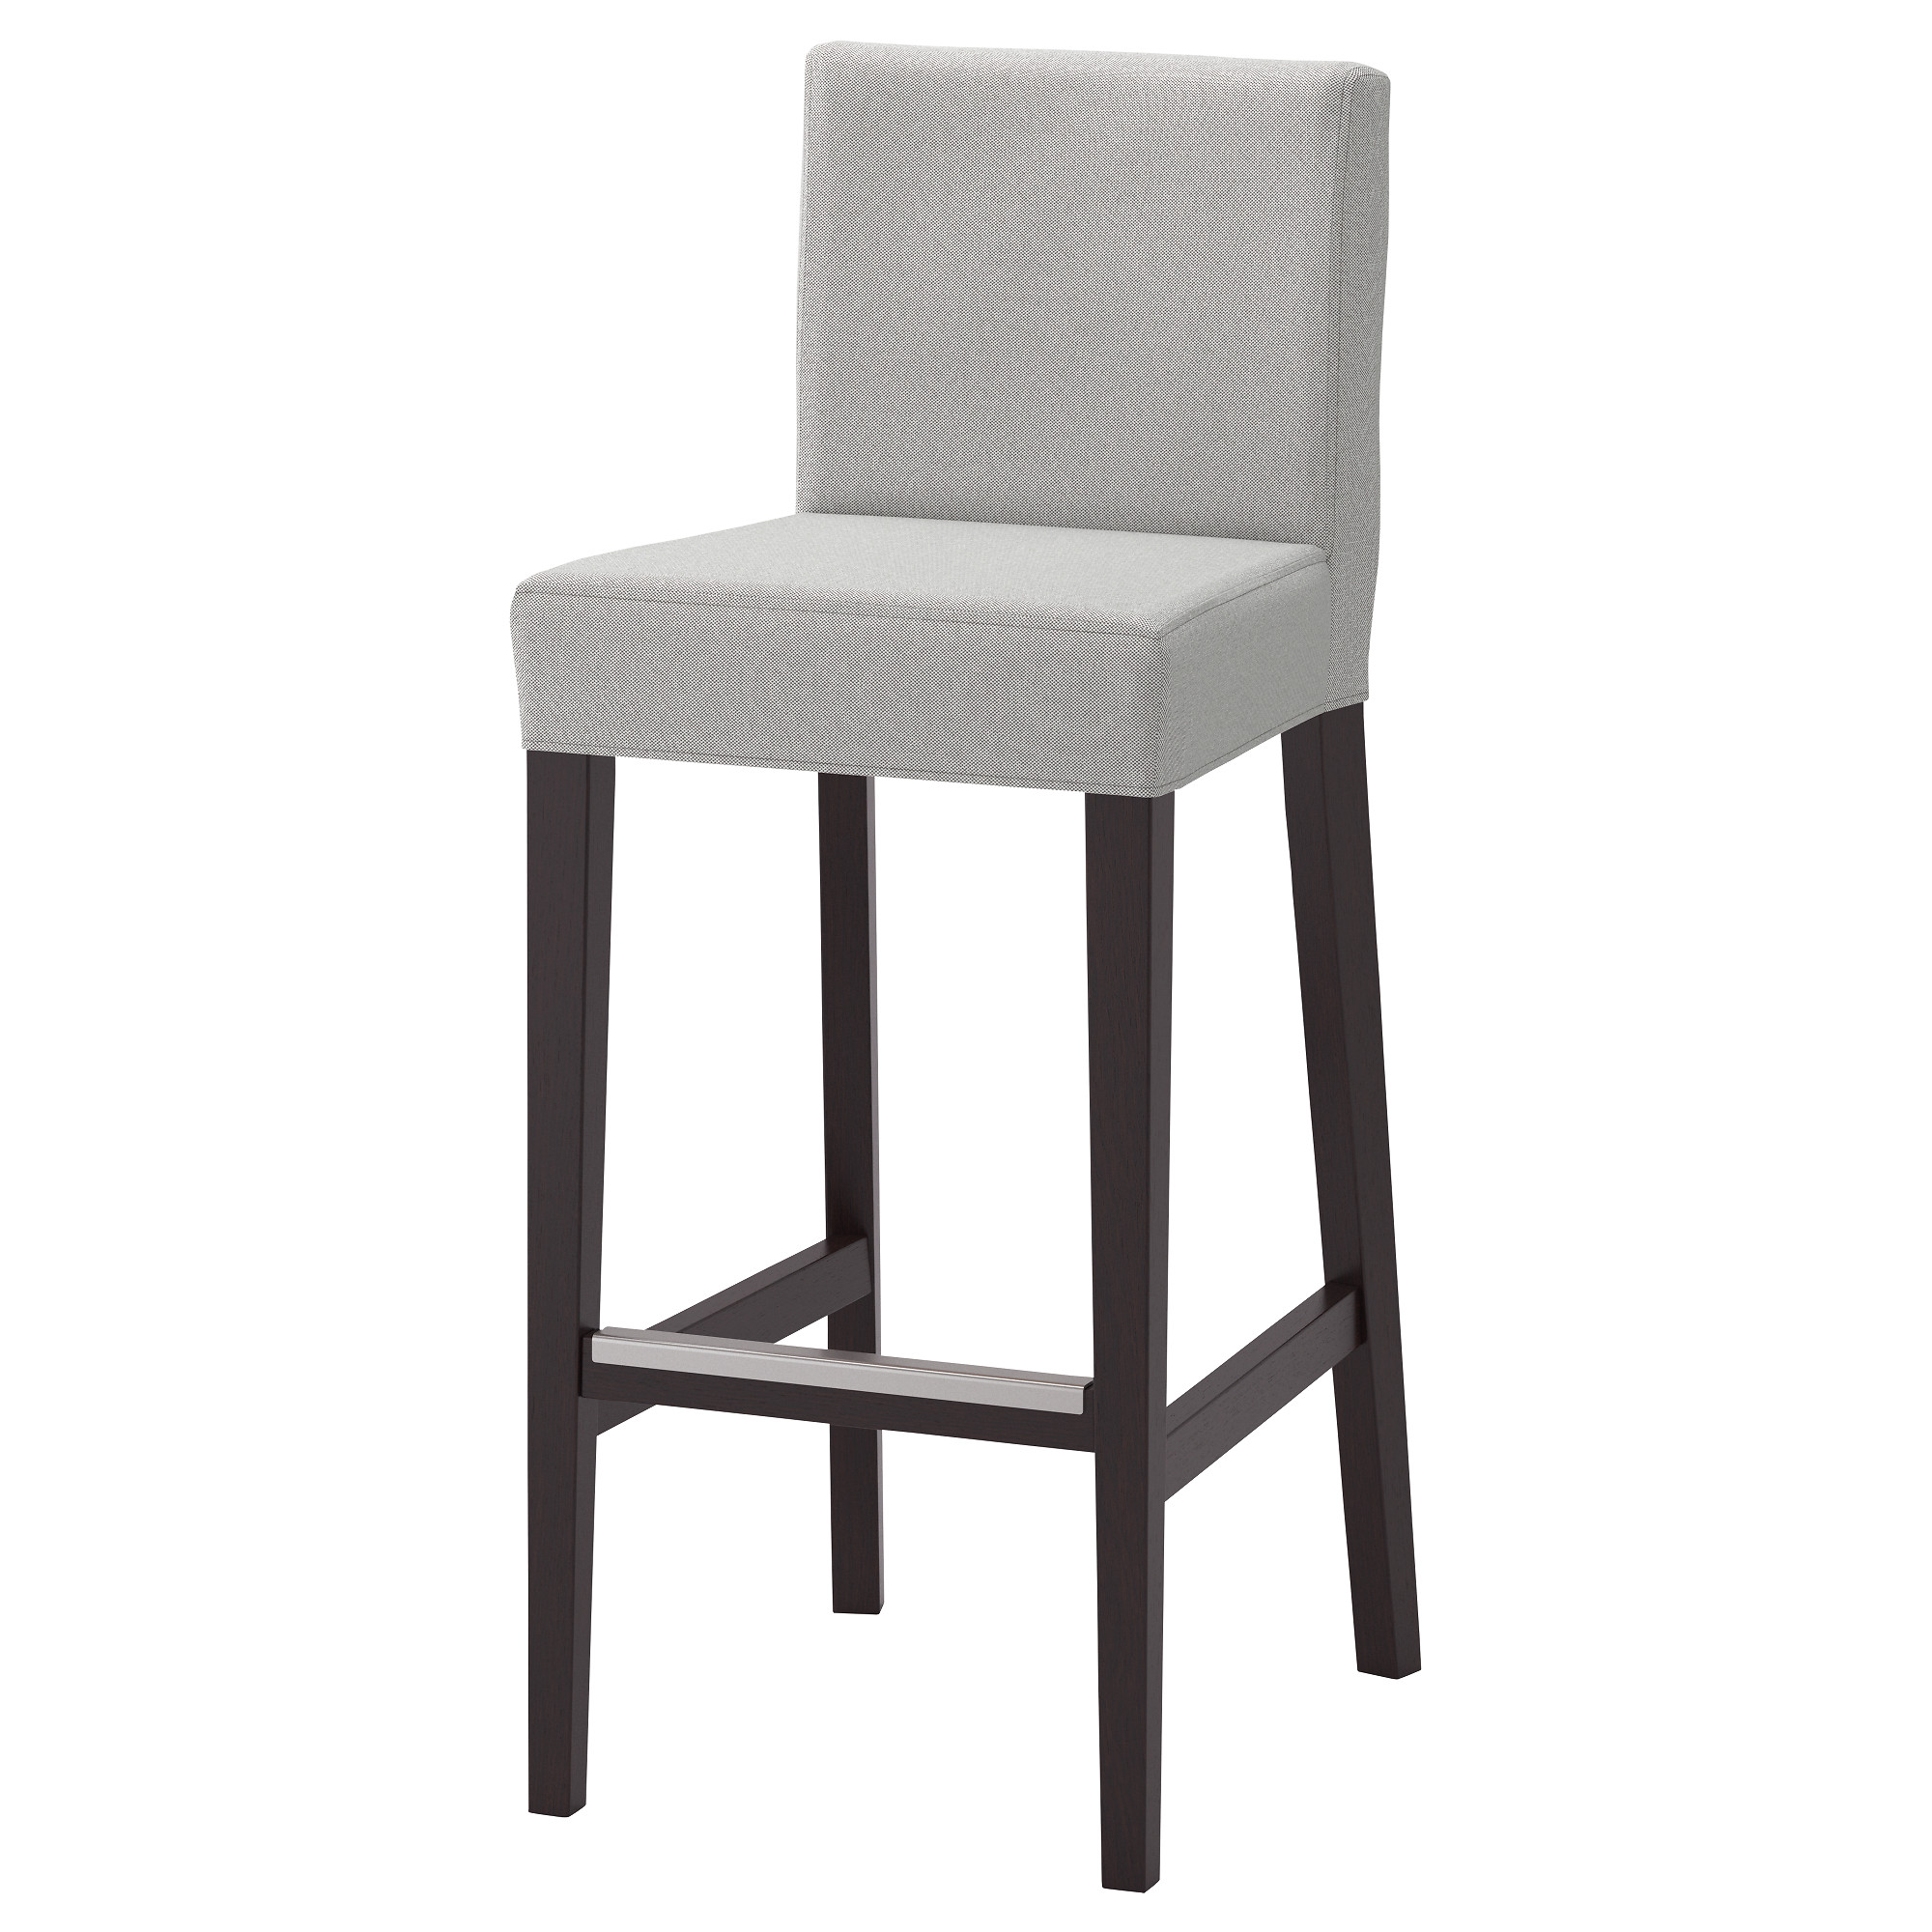 HENRIKSDAL bar stool with backrest brown-black Orrsta light gray Tested for  sc 1 st  Ikea & Bar Stools - IKEA islam-shia.org